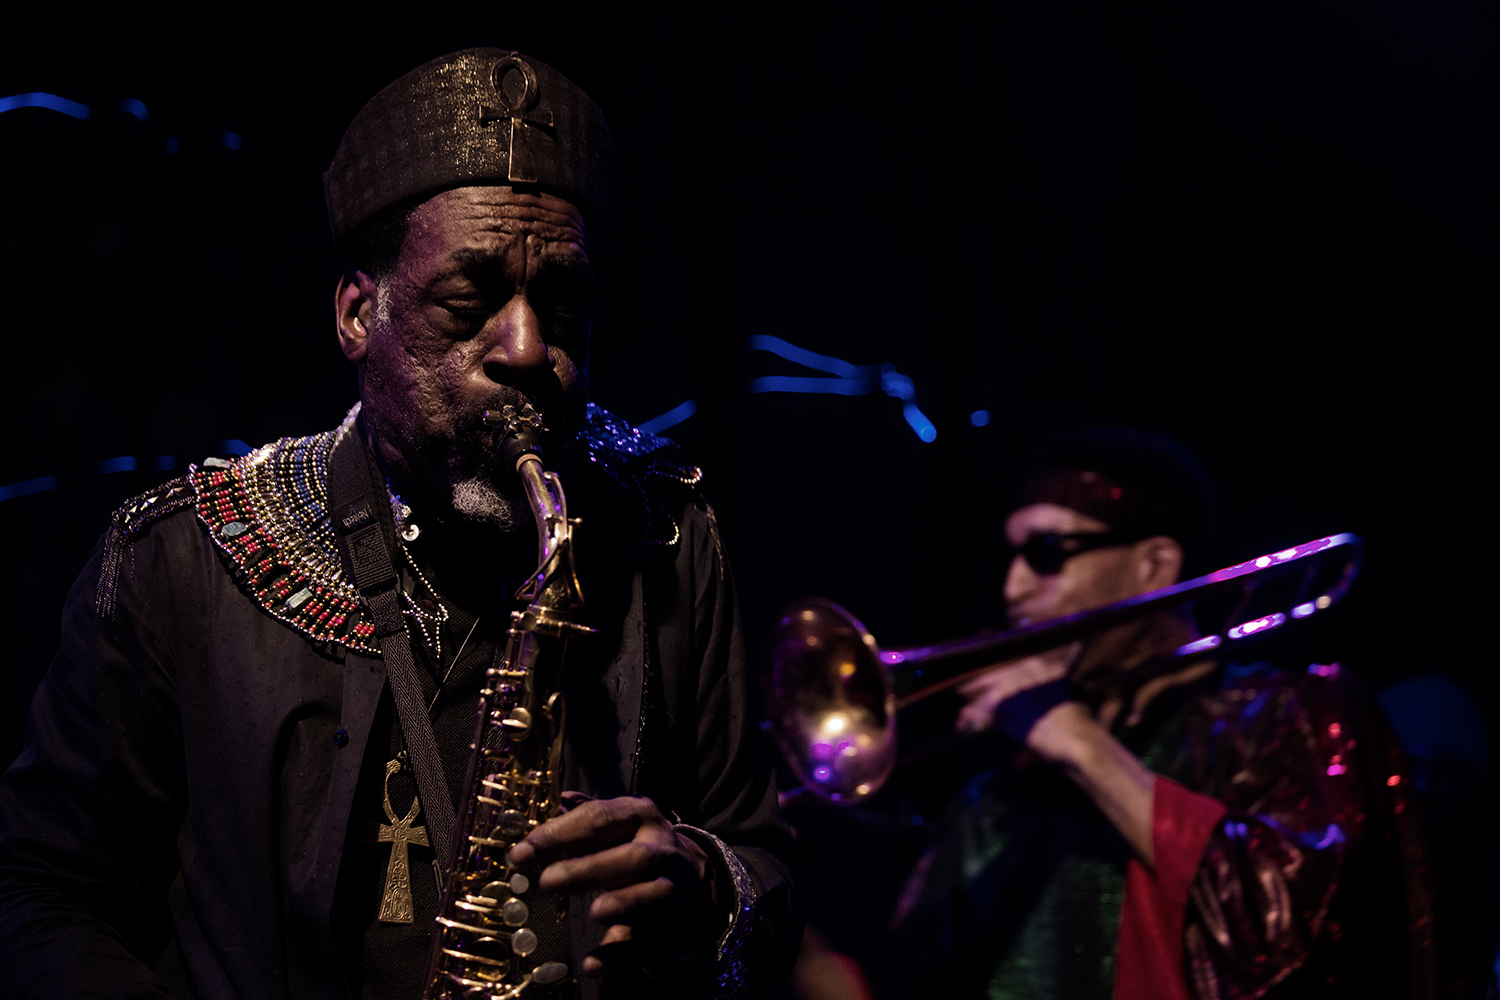 Sun Ra Arkestra directed by Marshall Allen by Laurent Orseau - Concert - Les Ateliers Claus - Brussels, Belgium #9